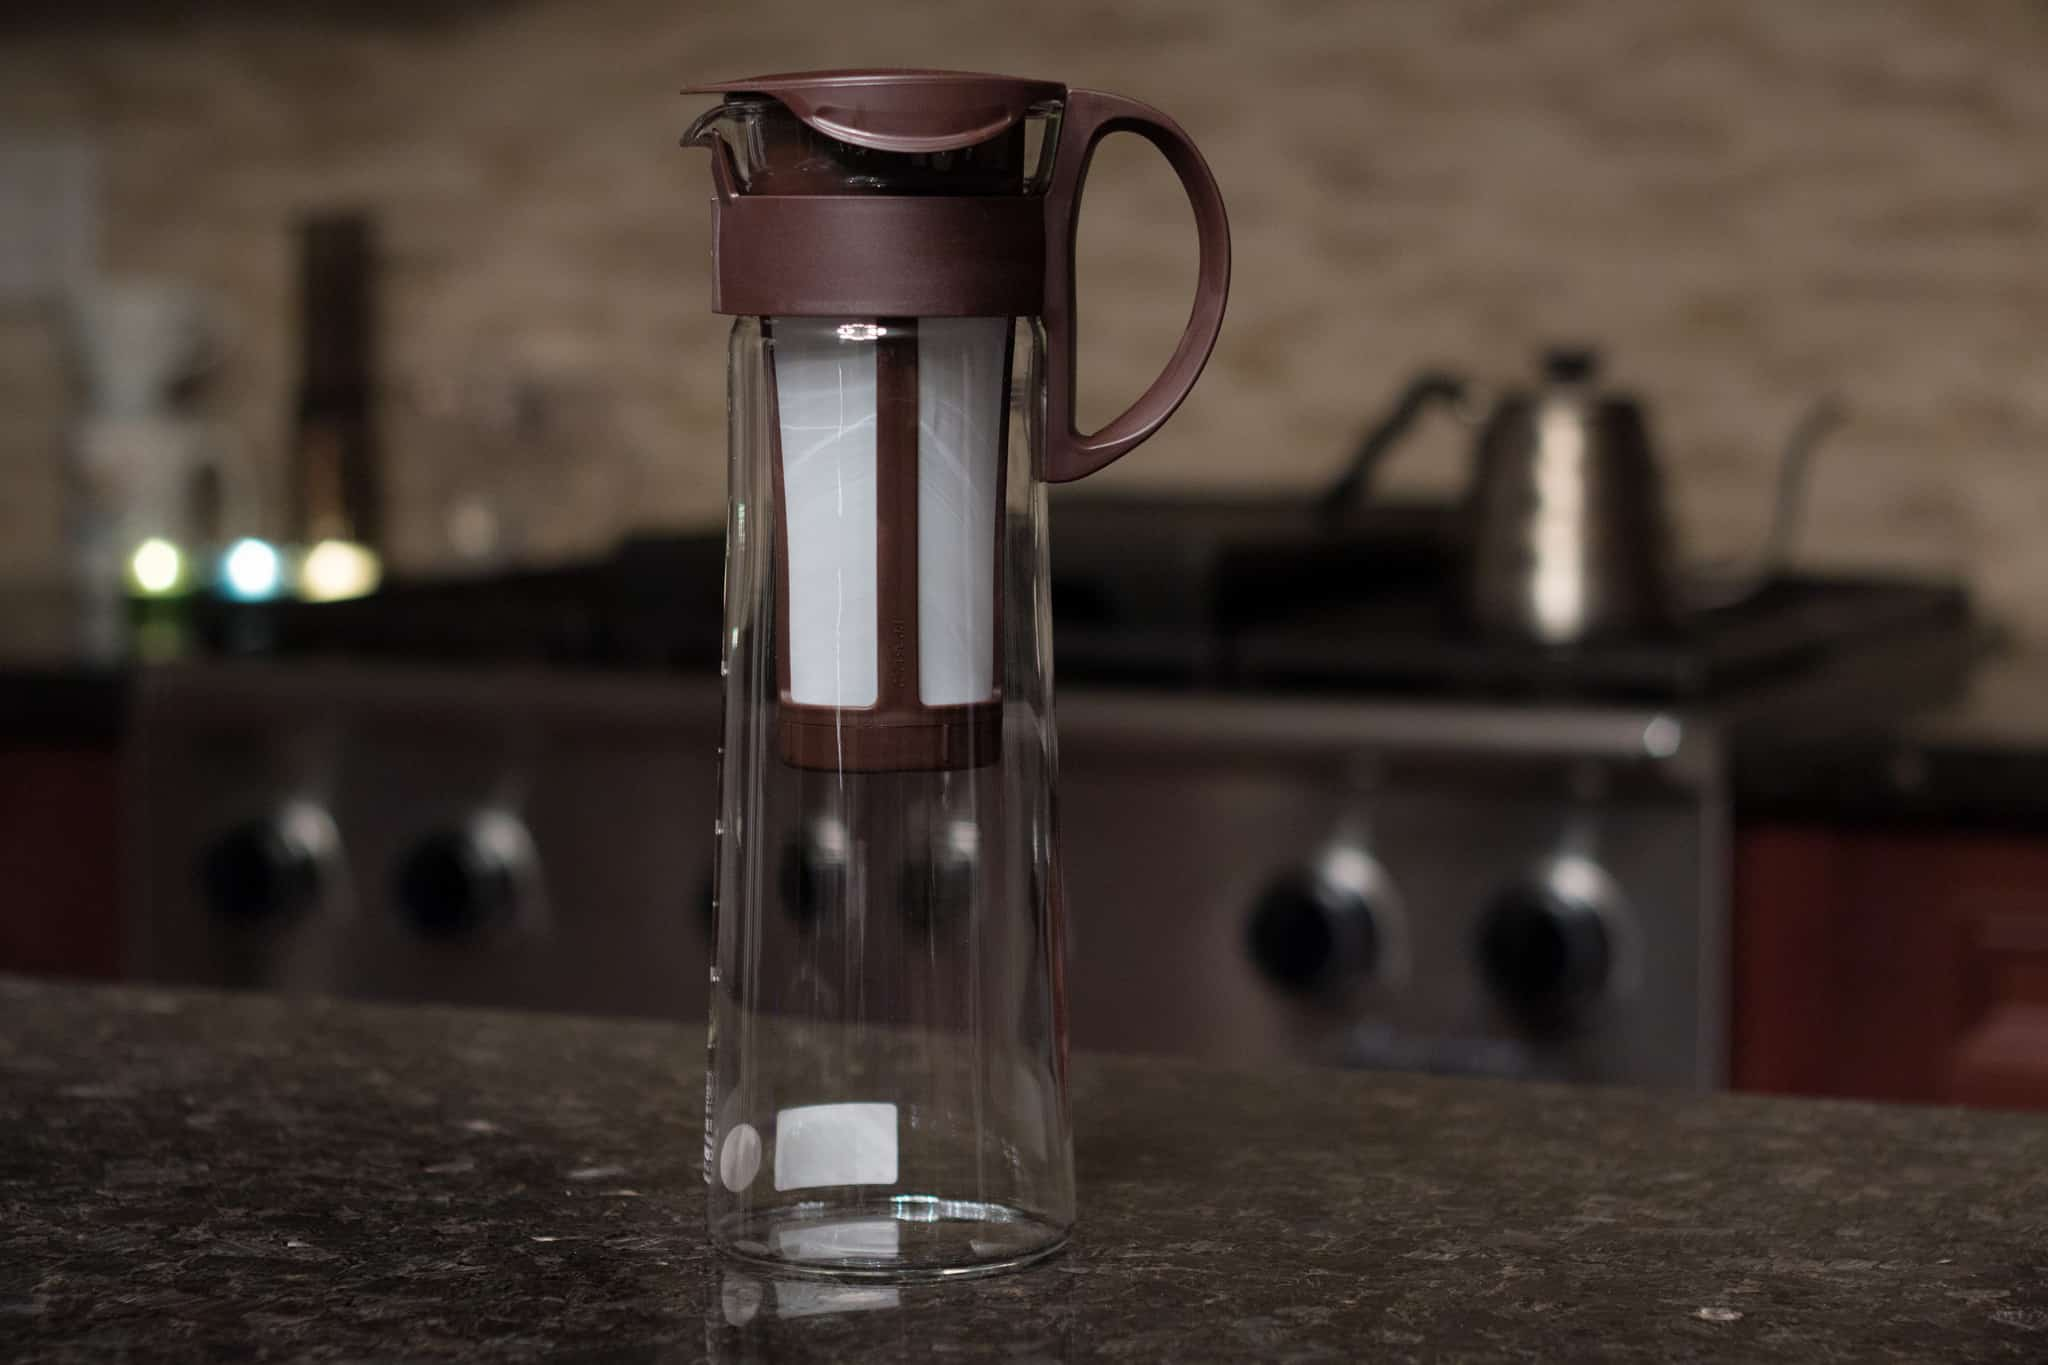 The Hario Mizudashi Cold Brew Coffee Maker